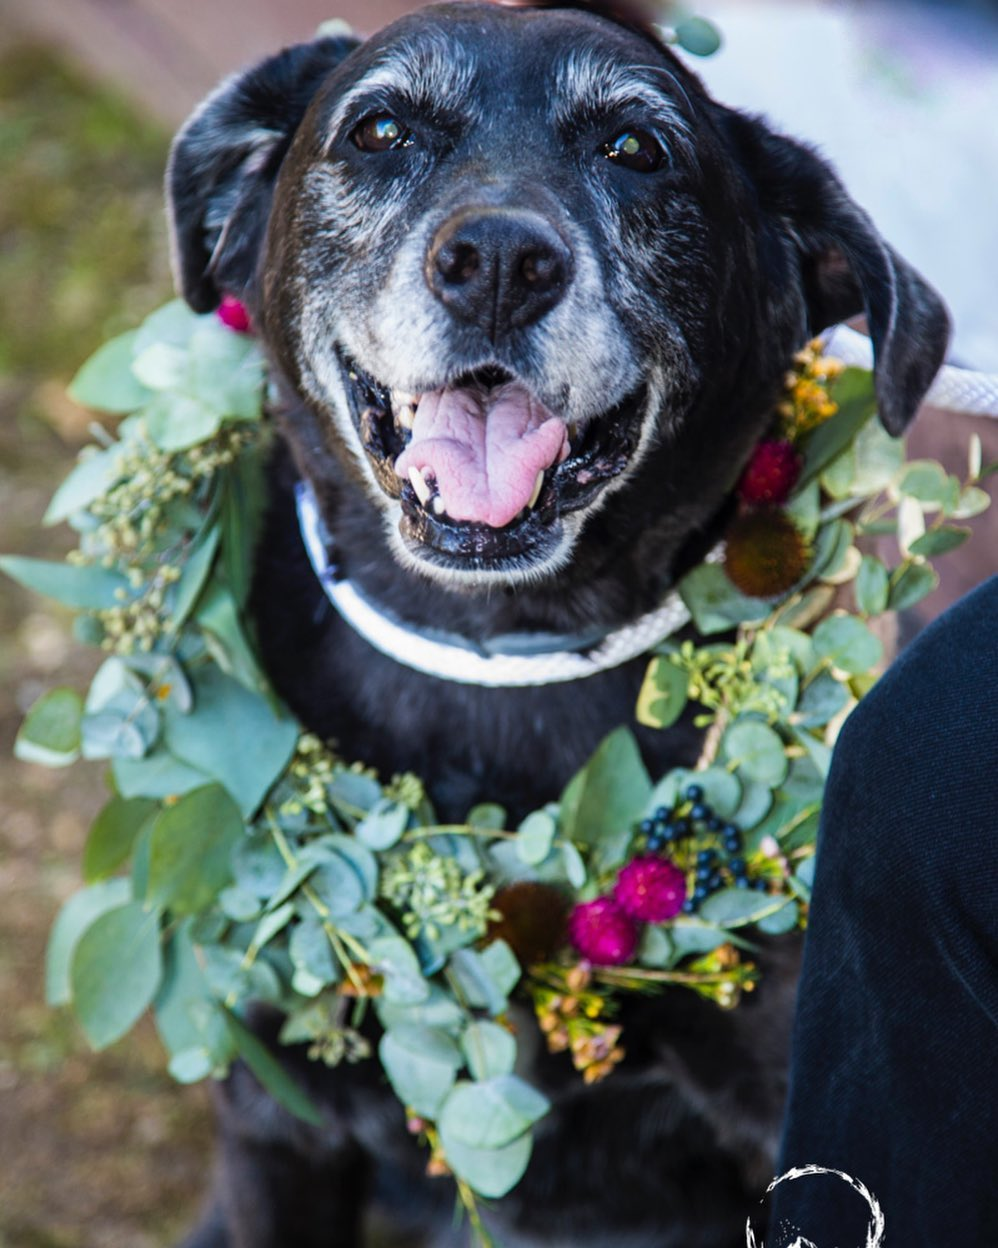 {honestly❤️🐶😍} photo | @throughthepinesphotography  coordination | @showcase_nh . . #furbaby #dogbling #dogsmiles #flowercollar #dogflowers #happydog #weddingday #love #lotusfloraldesigns